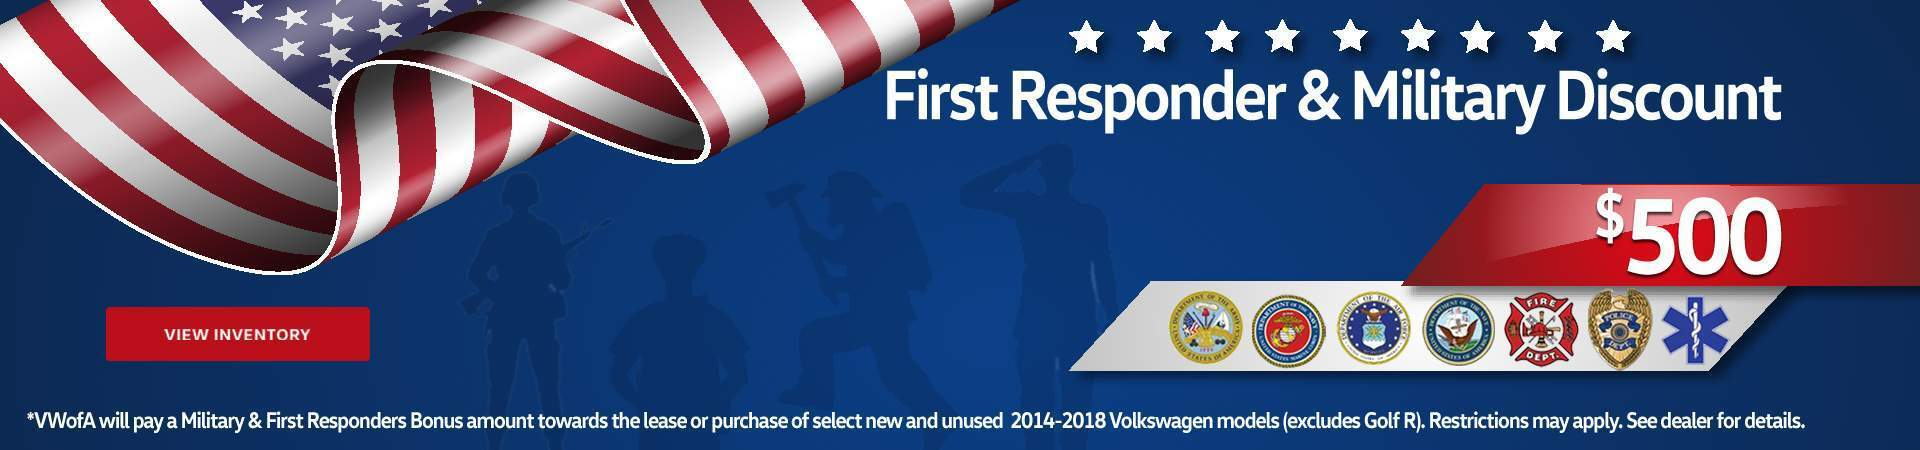 Military/First Responder Banner